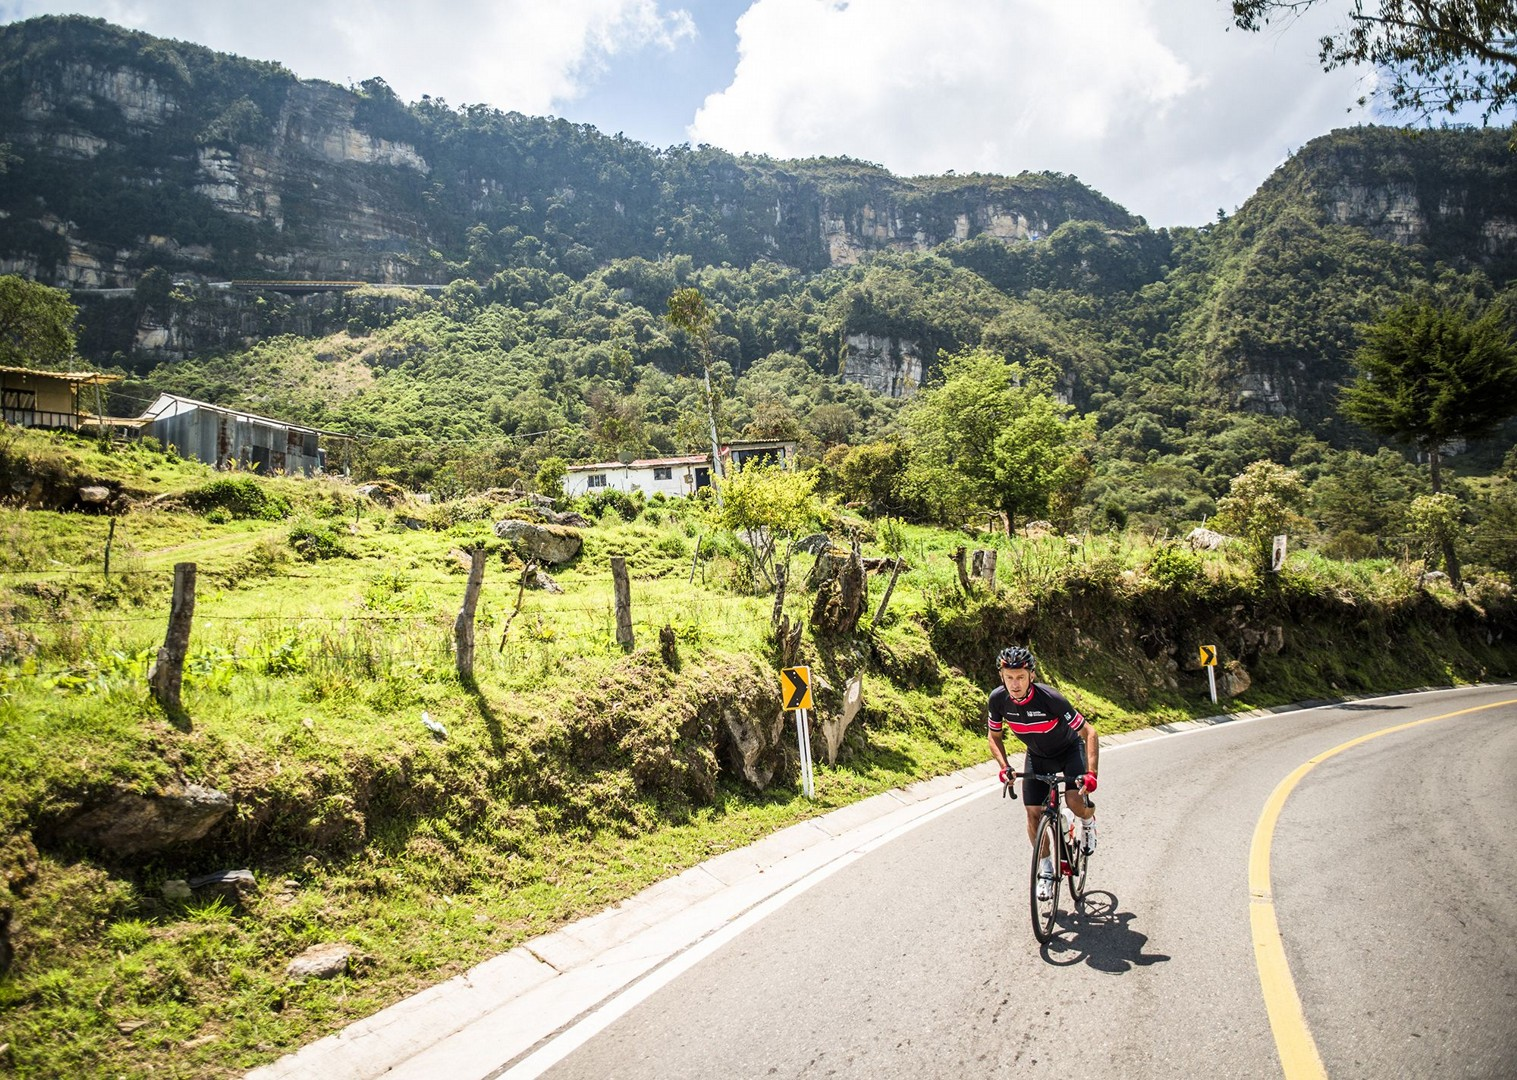 day_1_040.jpg - Colombia - Emerald Mountains - Road Cycling